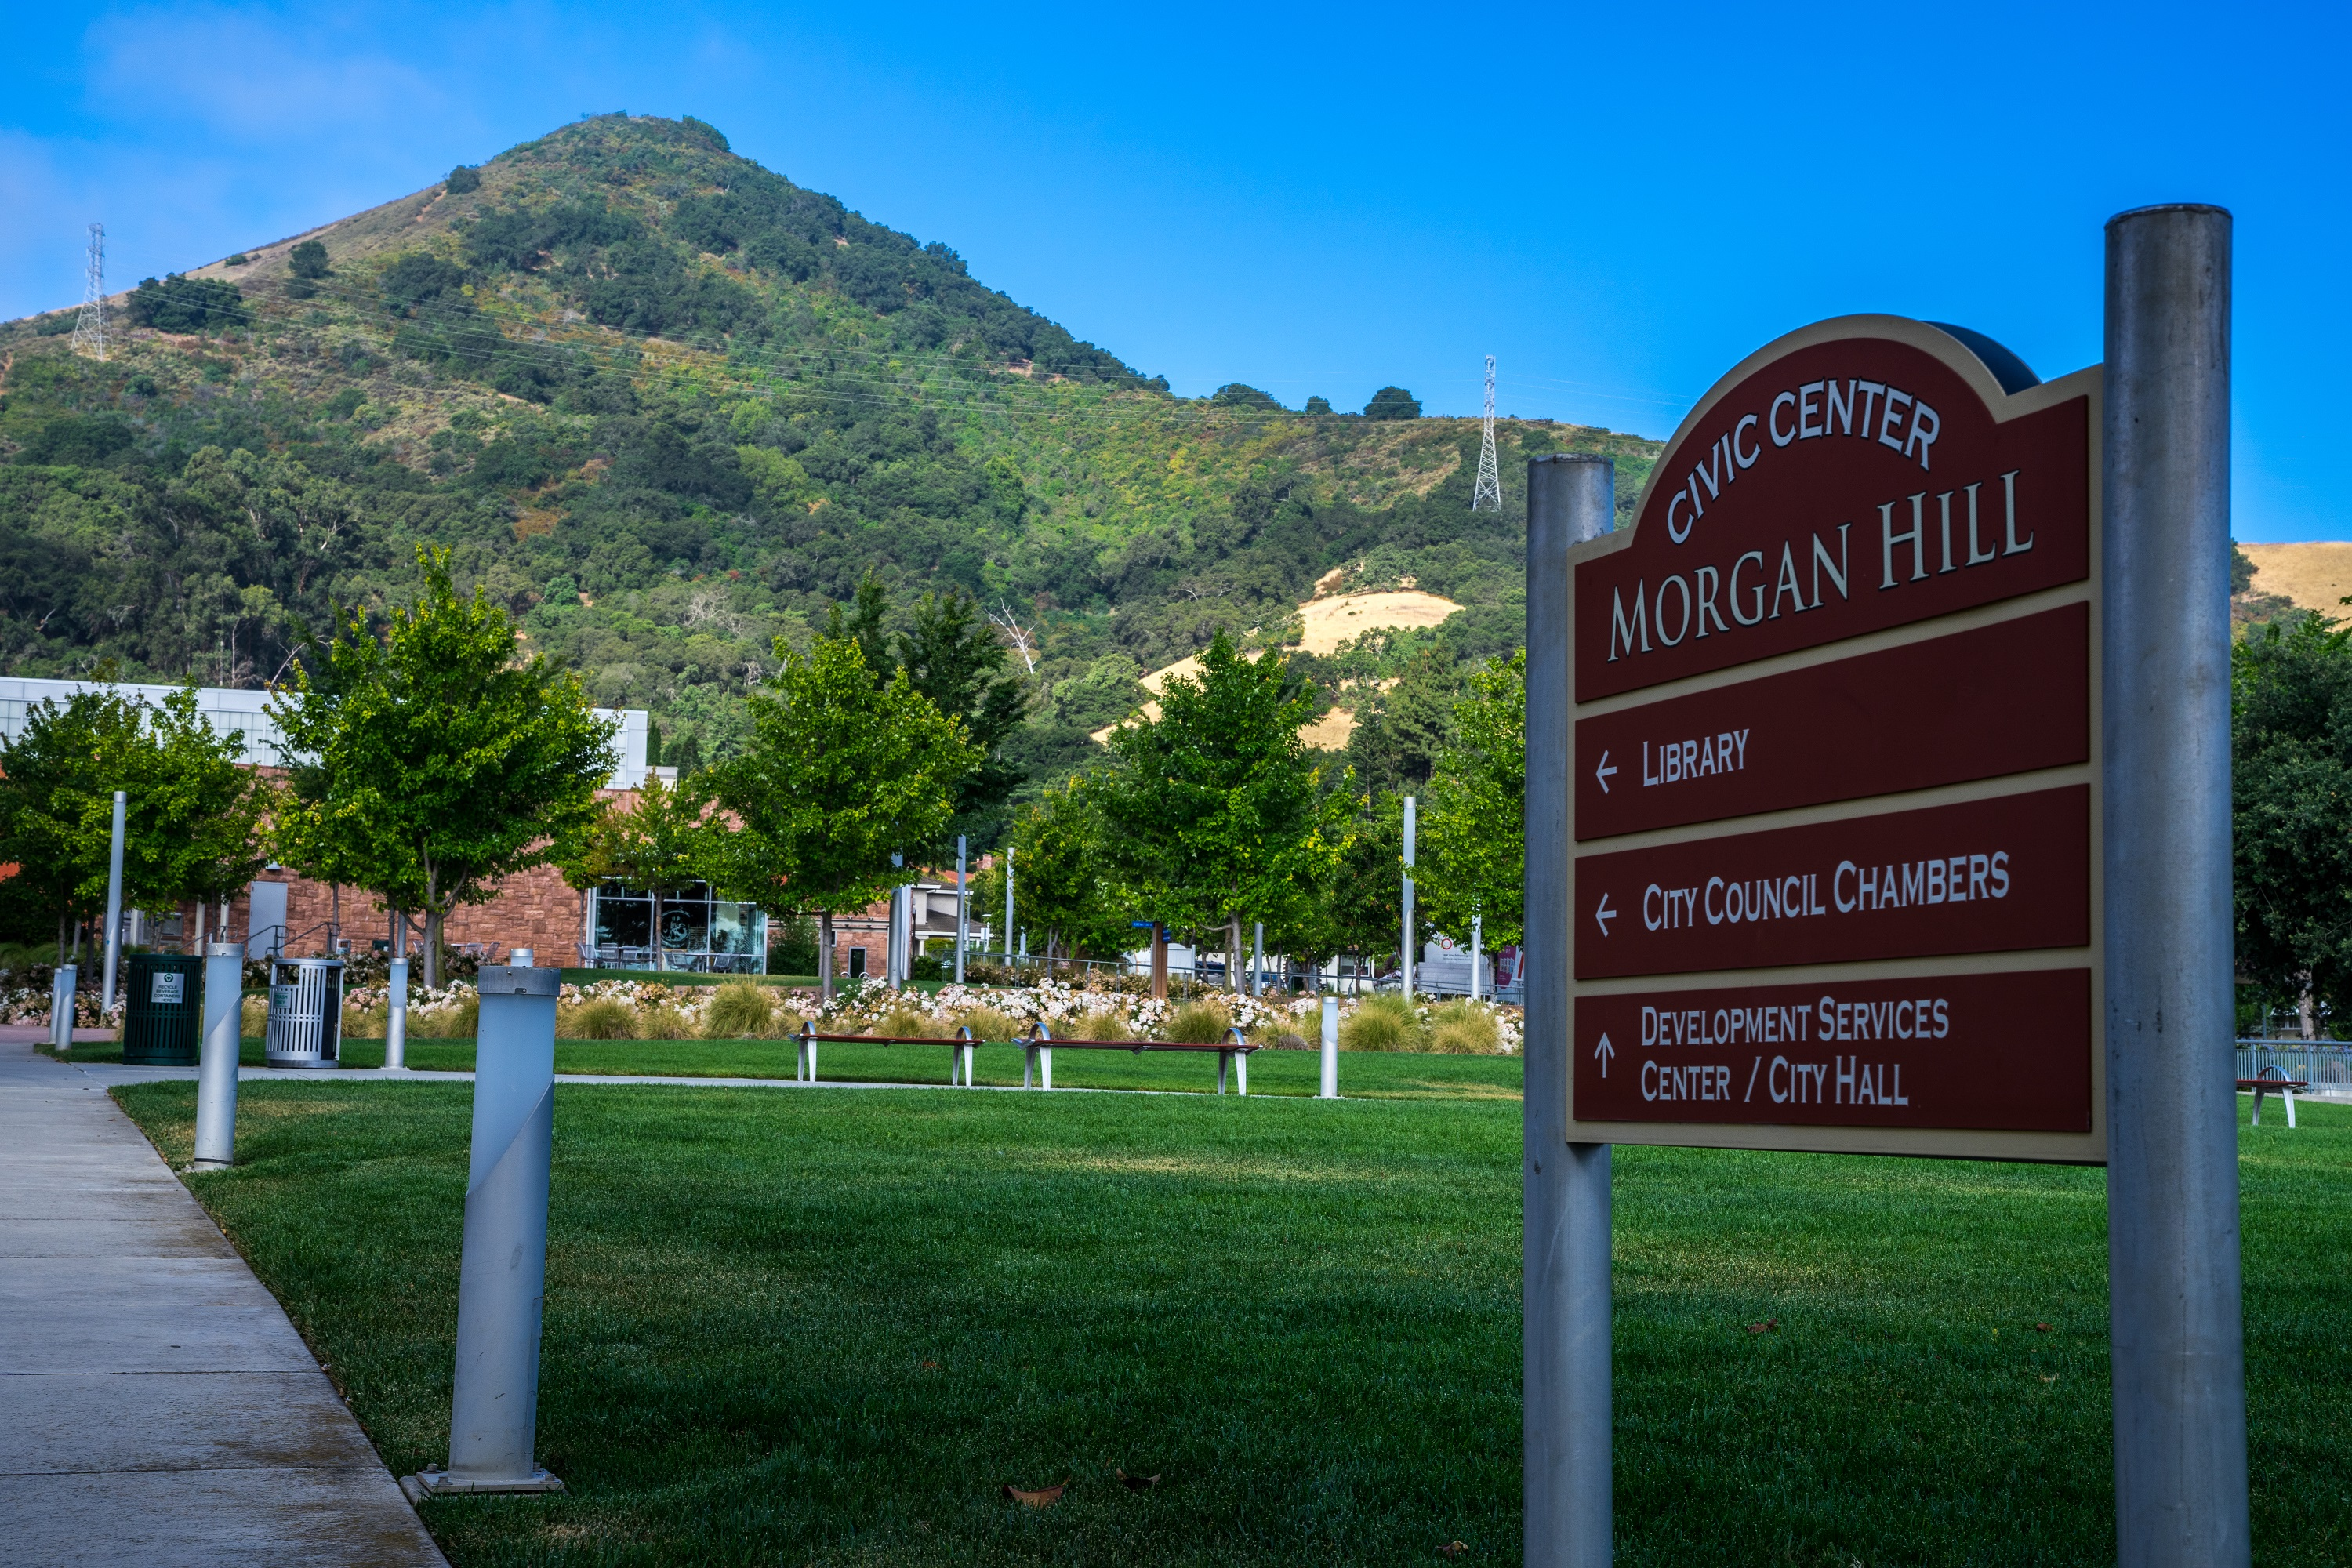 Morgan Hill Civic Center Sign